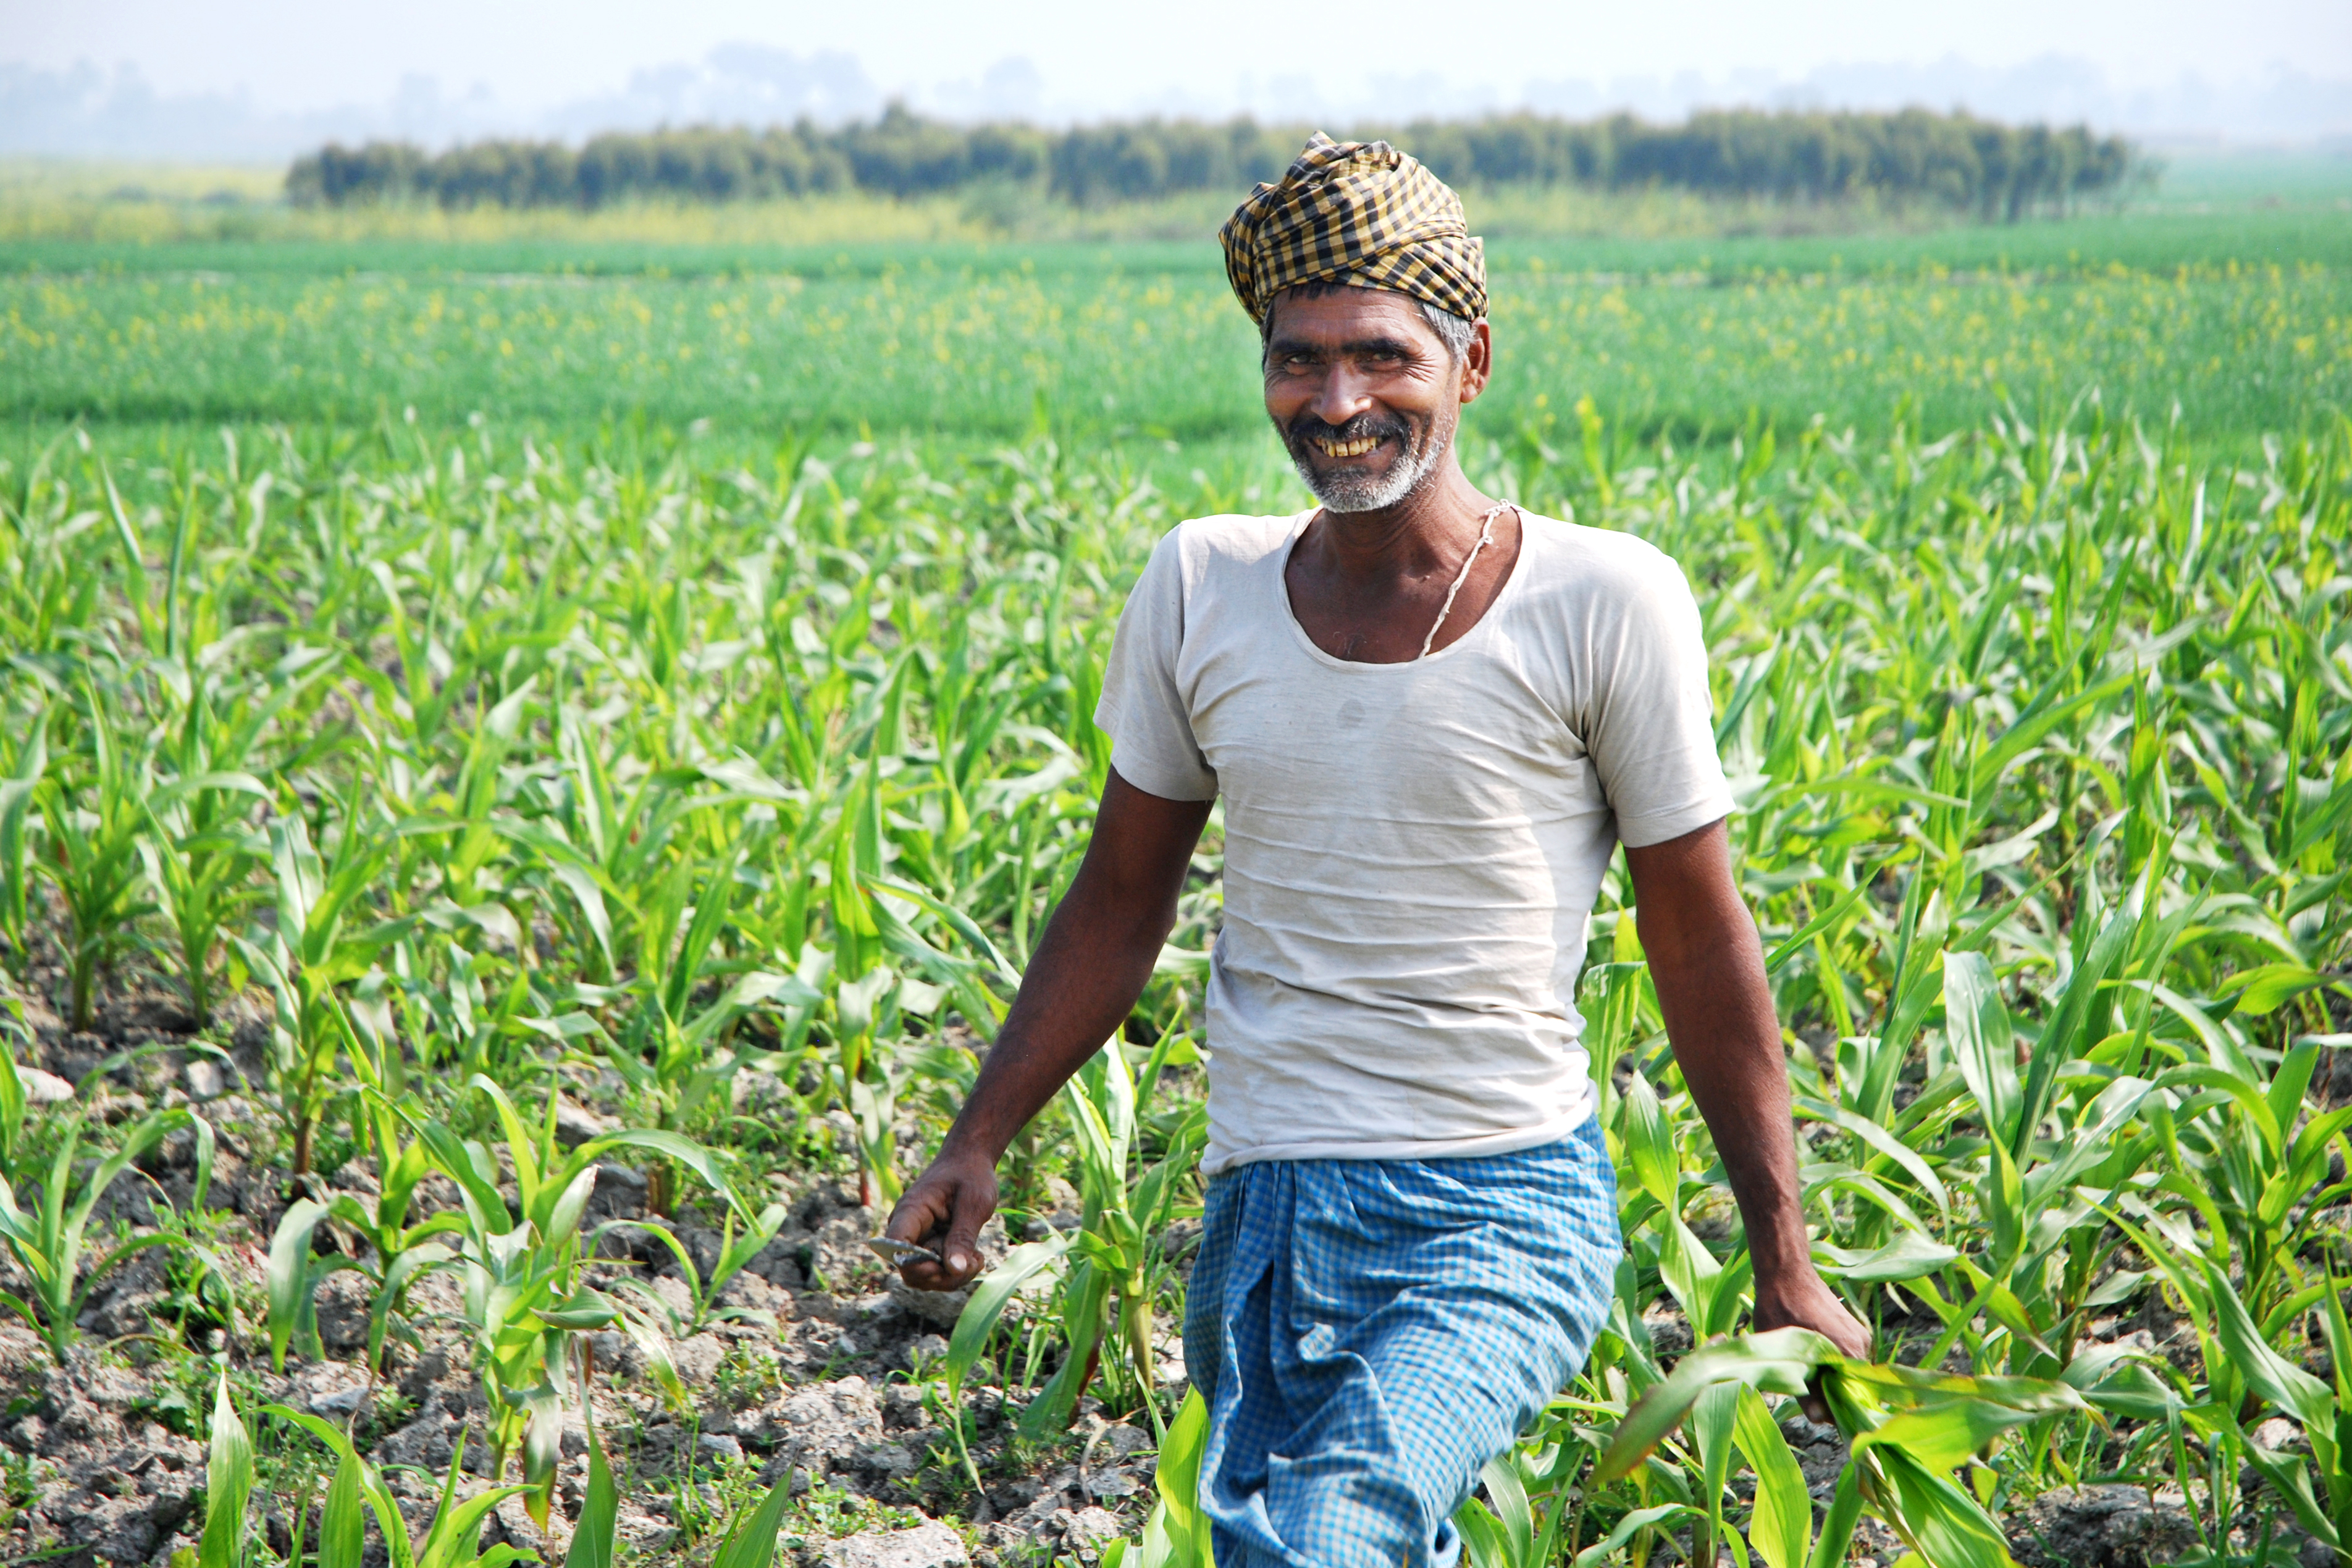 an essay on indian farmer Problems faced by indian farmers in hindi| essay on farmers problems in hindi| the farmer topic in hindi| essay on bhartiya kisan in hindi language| 5 sentences about farmer.